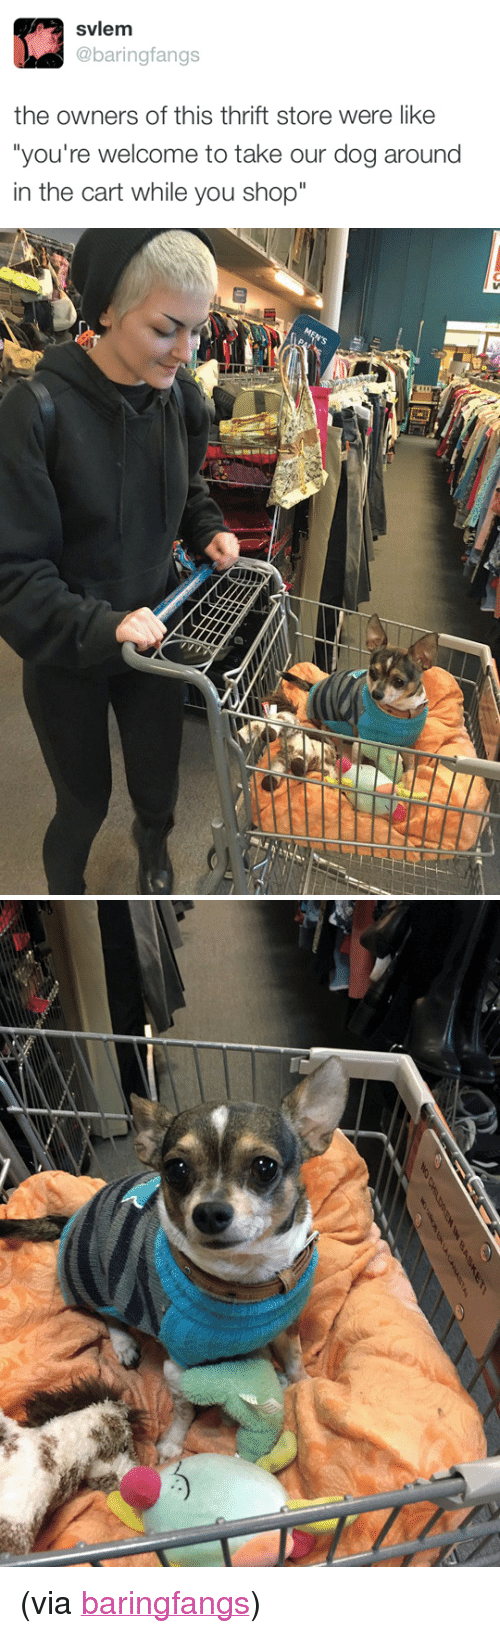 """Target, Twitter, and Blank: svlem  @baringfangs  the owners of this thrift store were like  you're welcome to take our dog around  in the cart while you shop"""" <p>(via <a href=""""https://twitter.com/baringfangs"""" target=""""_blank"""">baringfangs</a>)<br/></p>"""